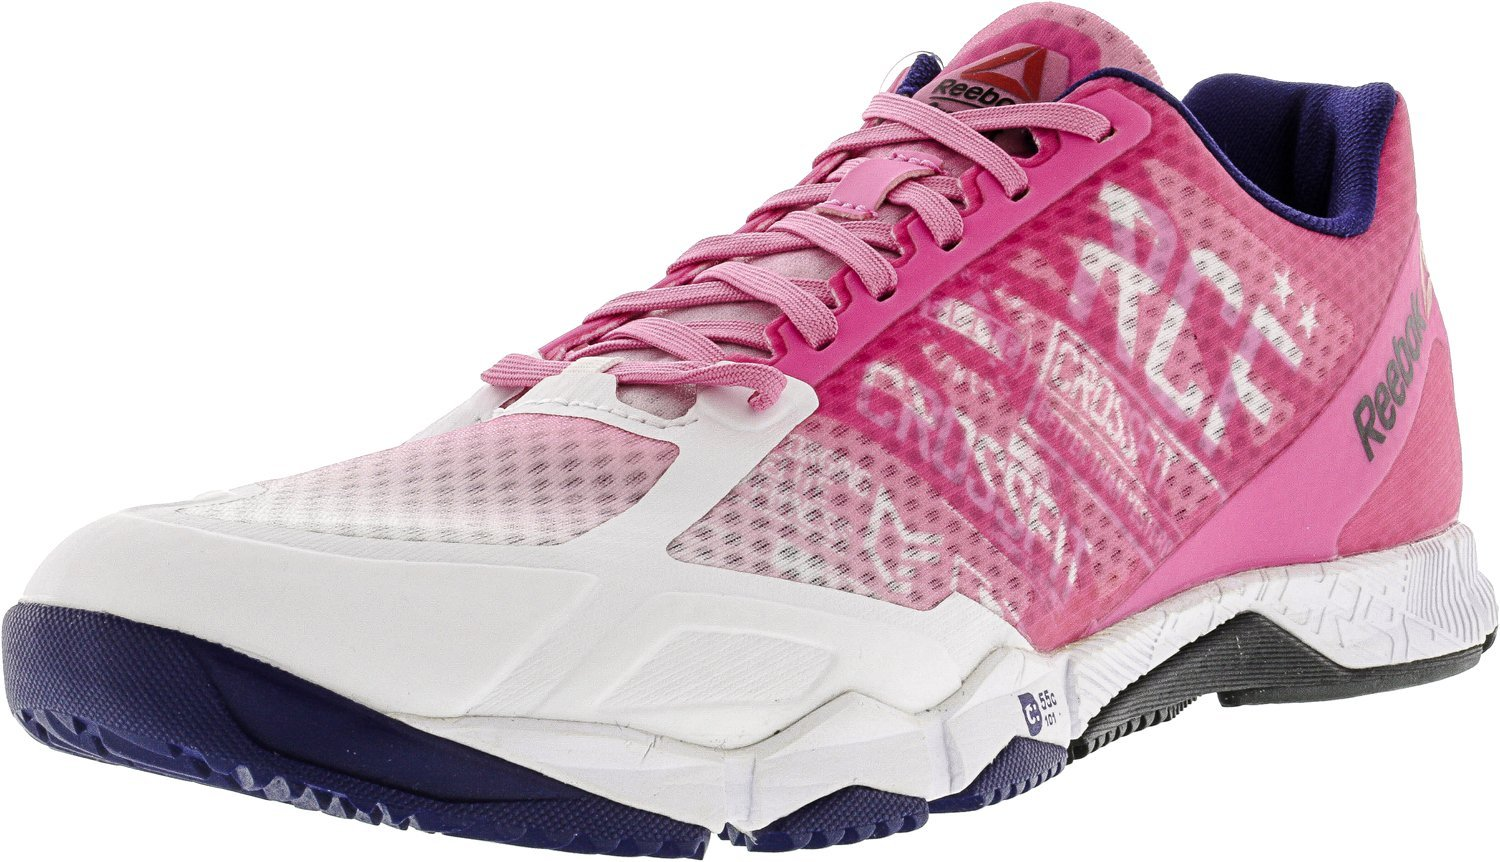 e6d31700bf3e Reebok Women s CROSSFIT Speed TR Cross Trainer   Fitness   Cross ...